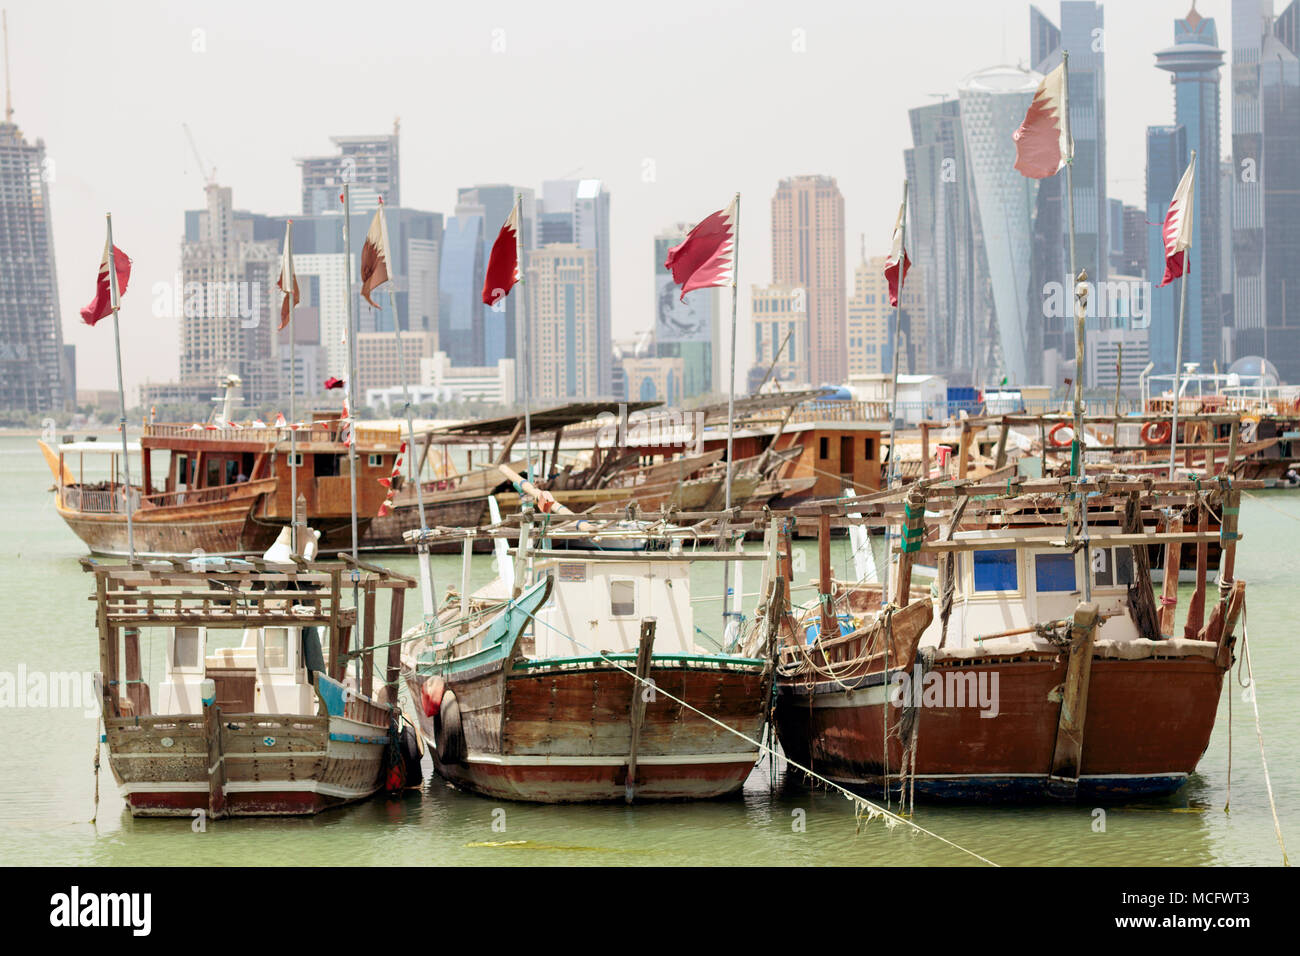 DOHA, QATAR - April 15, 2018: Small fishing boats flying qatari flags in the harbour with towers behind. Shows of loyalty have increased since Qatar w Stock Photo